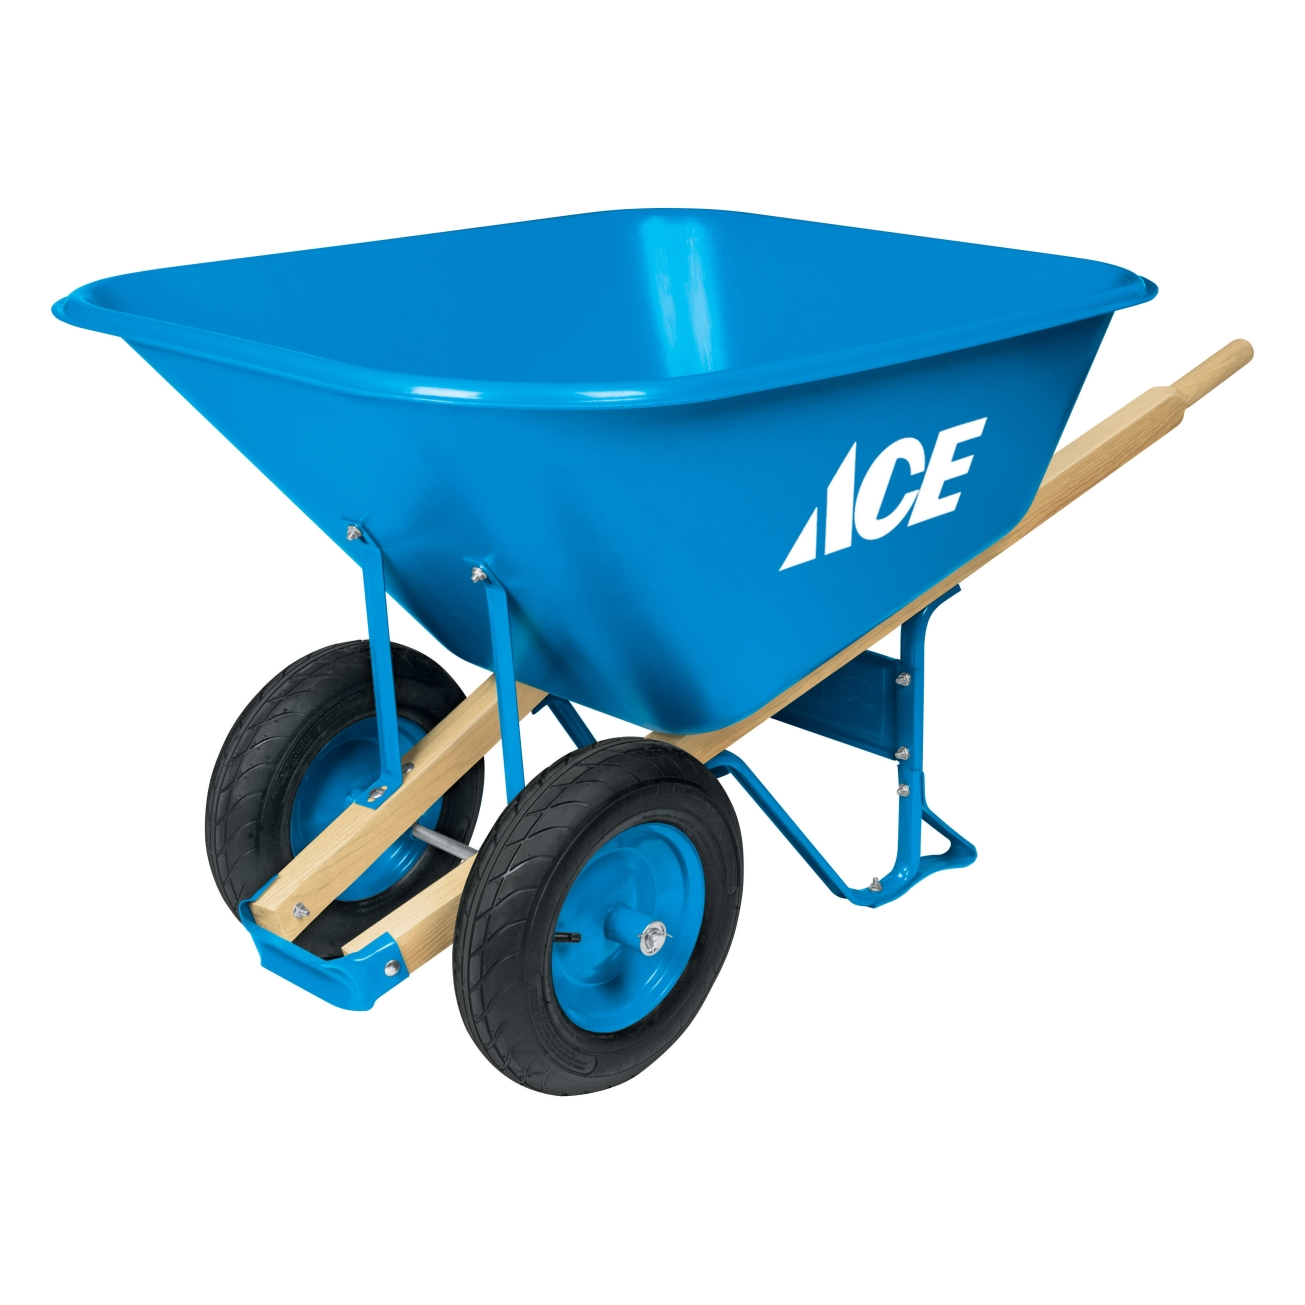 Wheelbarrows - Steel and Contractor Wheelbarrows at Ace Hardware ... png transparent library